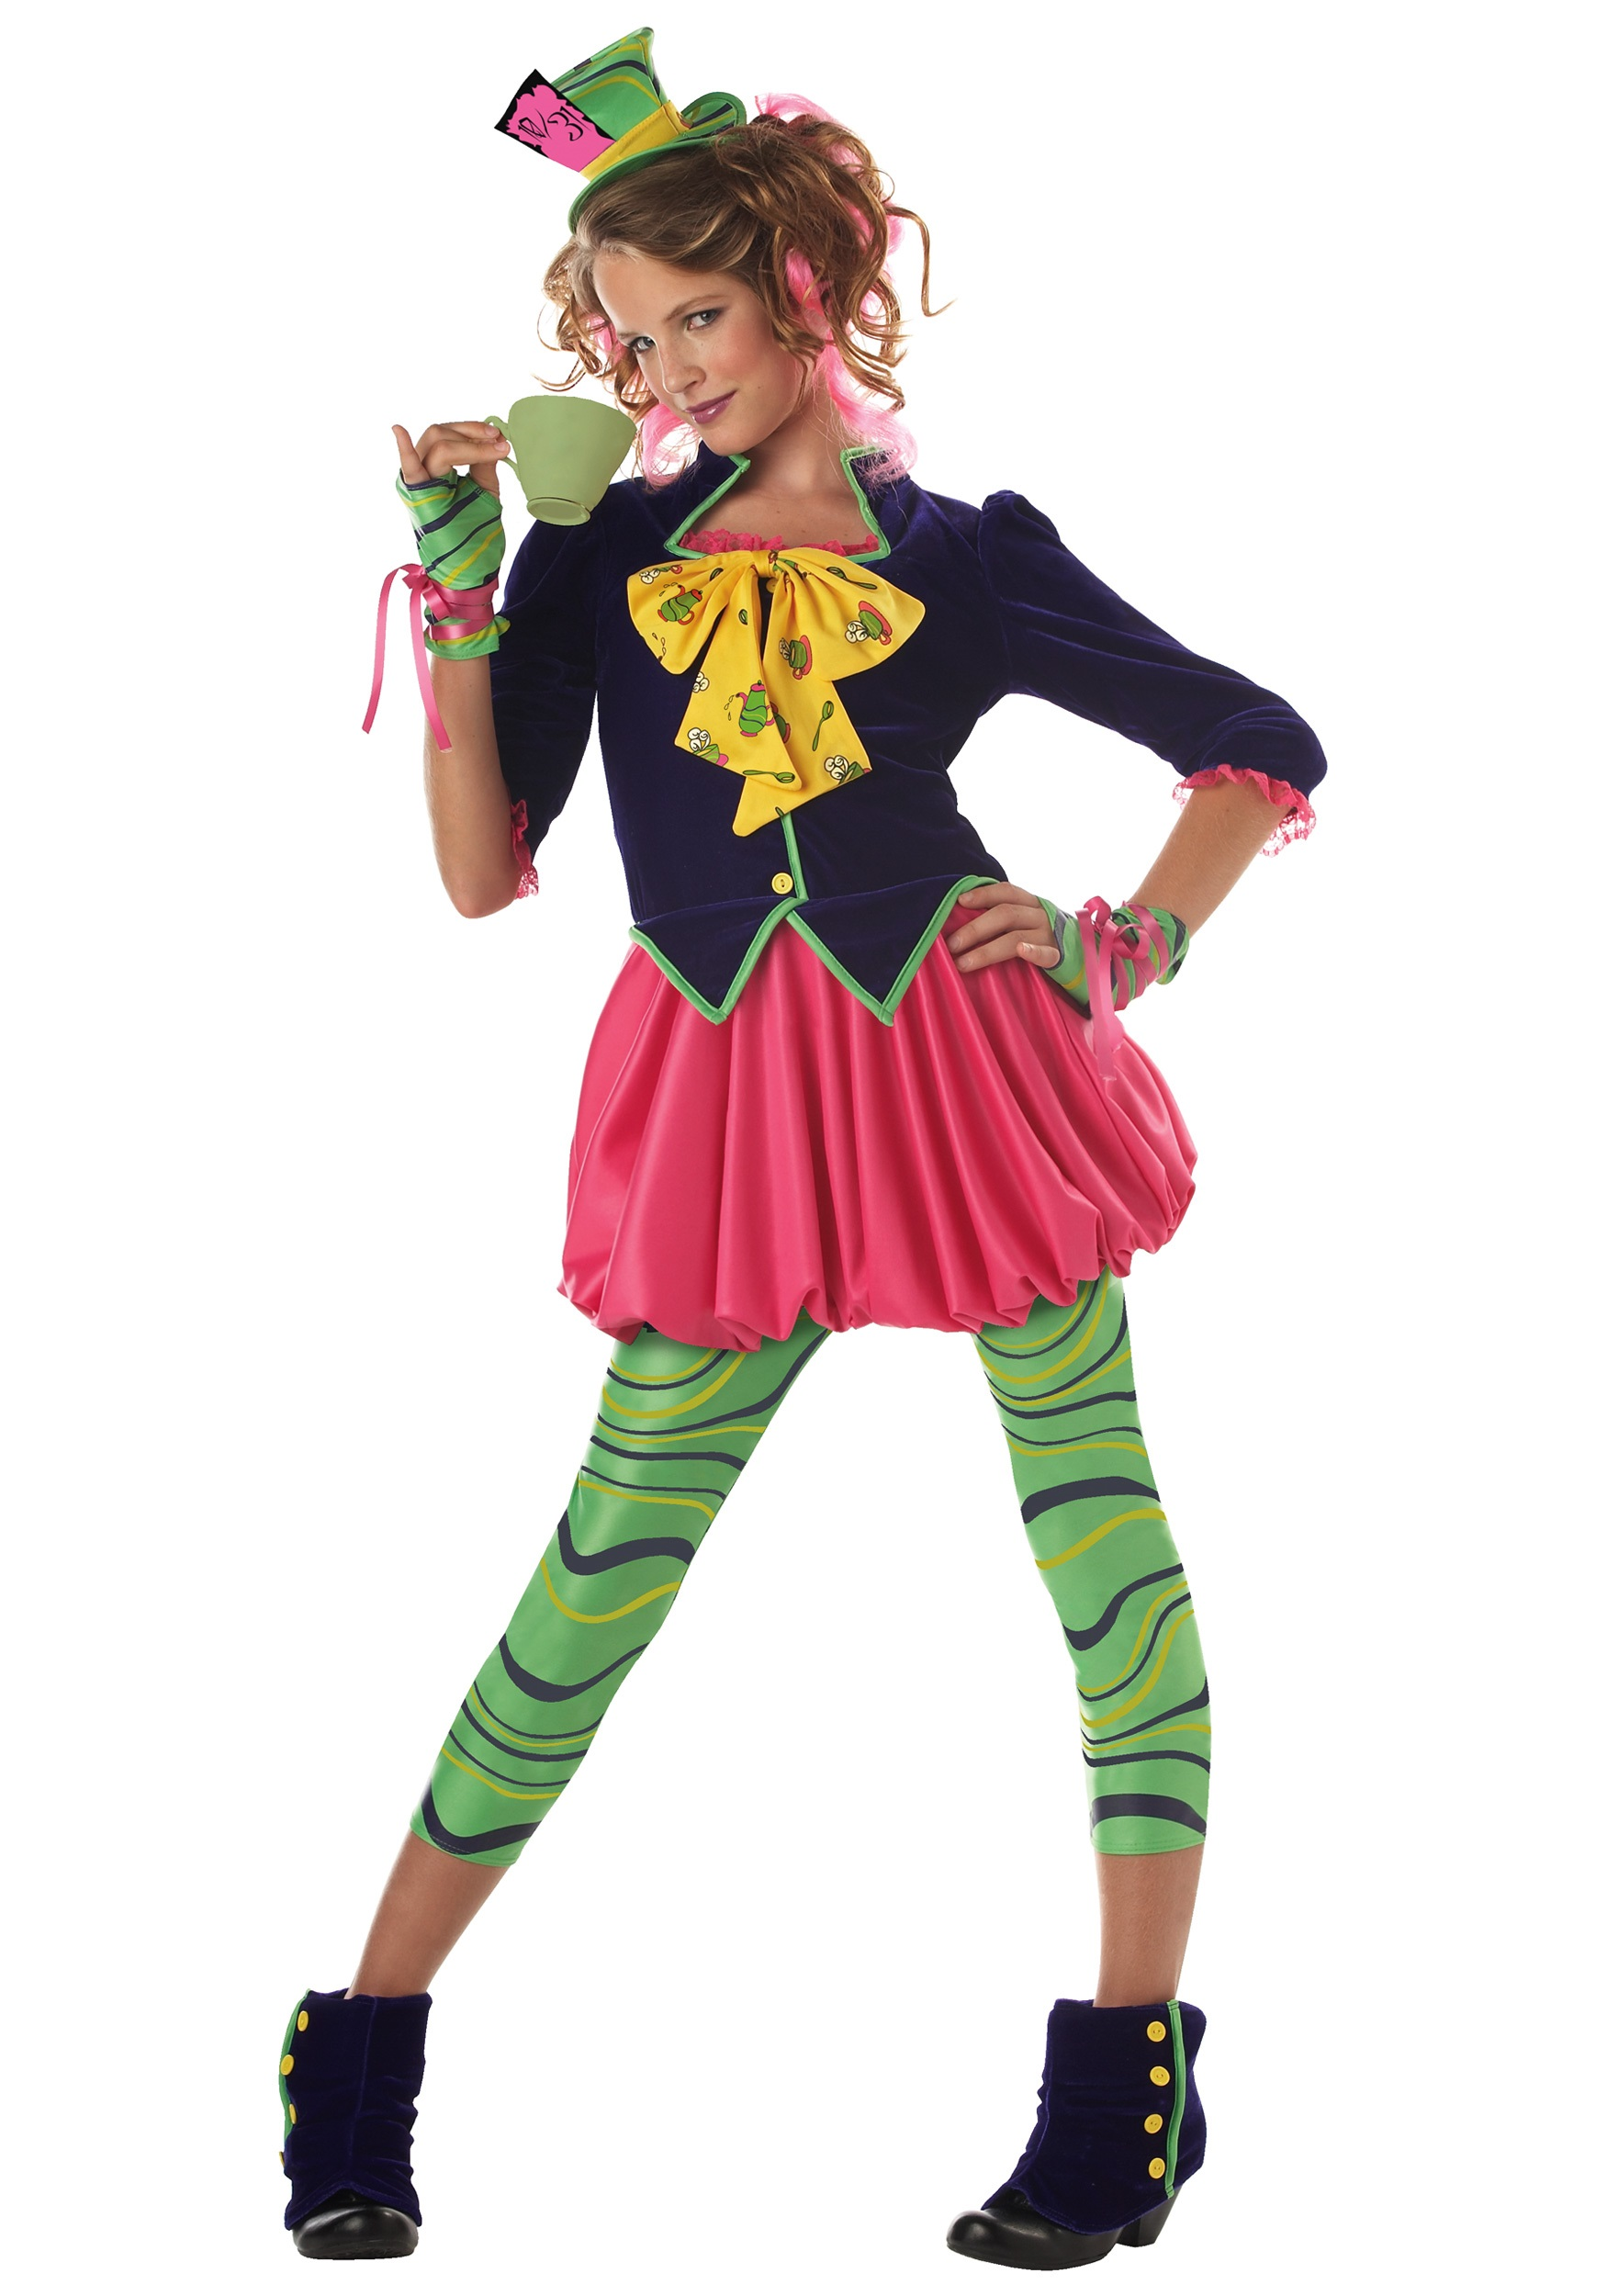 Tween Miss Hatter Girls Costume  sc 1 st  Halloween Costume & Tween Miss Hatter Girls Costume - Mad Hatter Wonderland Child Costumes